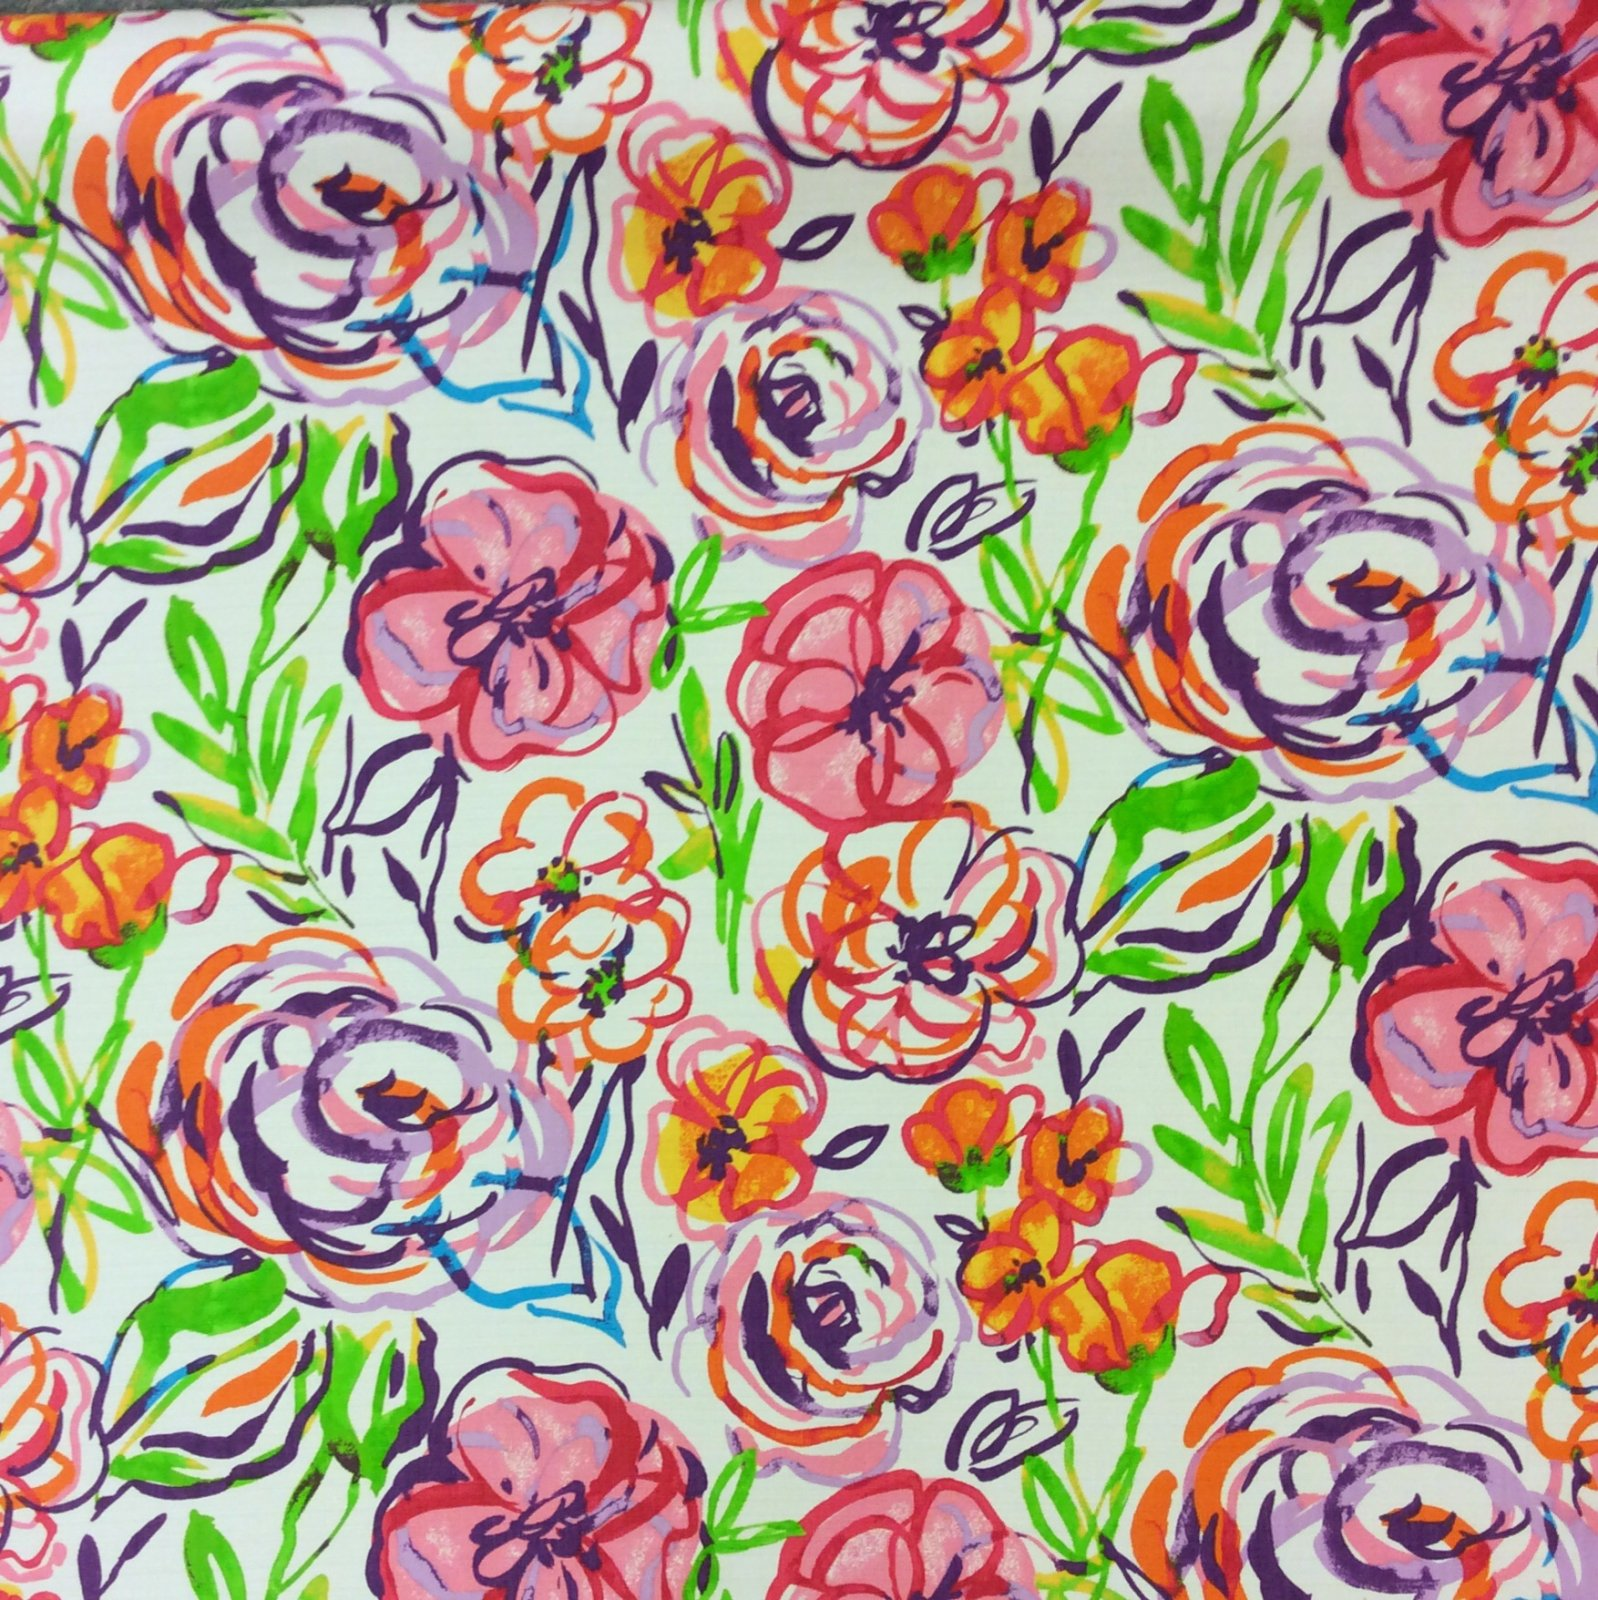 Brushstroke Floral Home Dec Cotton Drapery Fabric Light Upholstery Fabric NL89